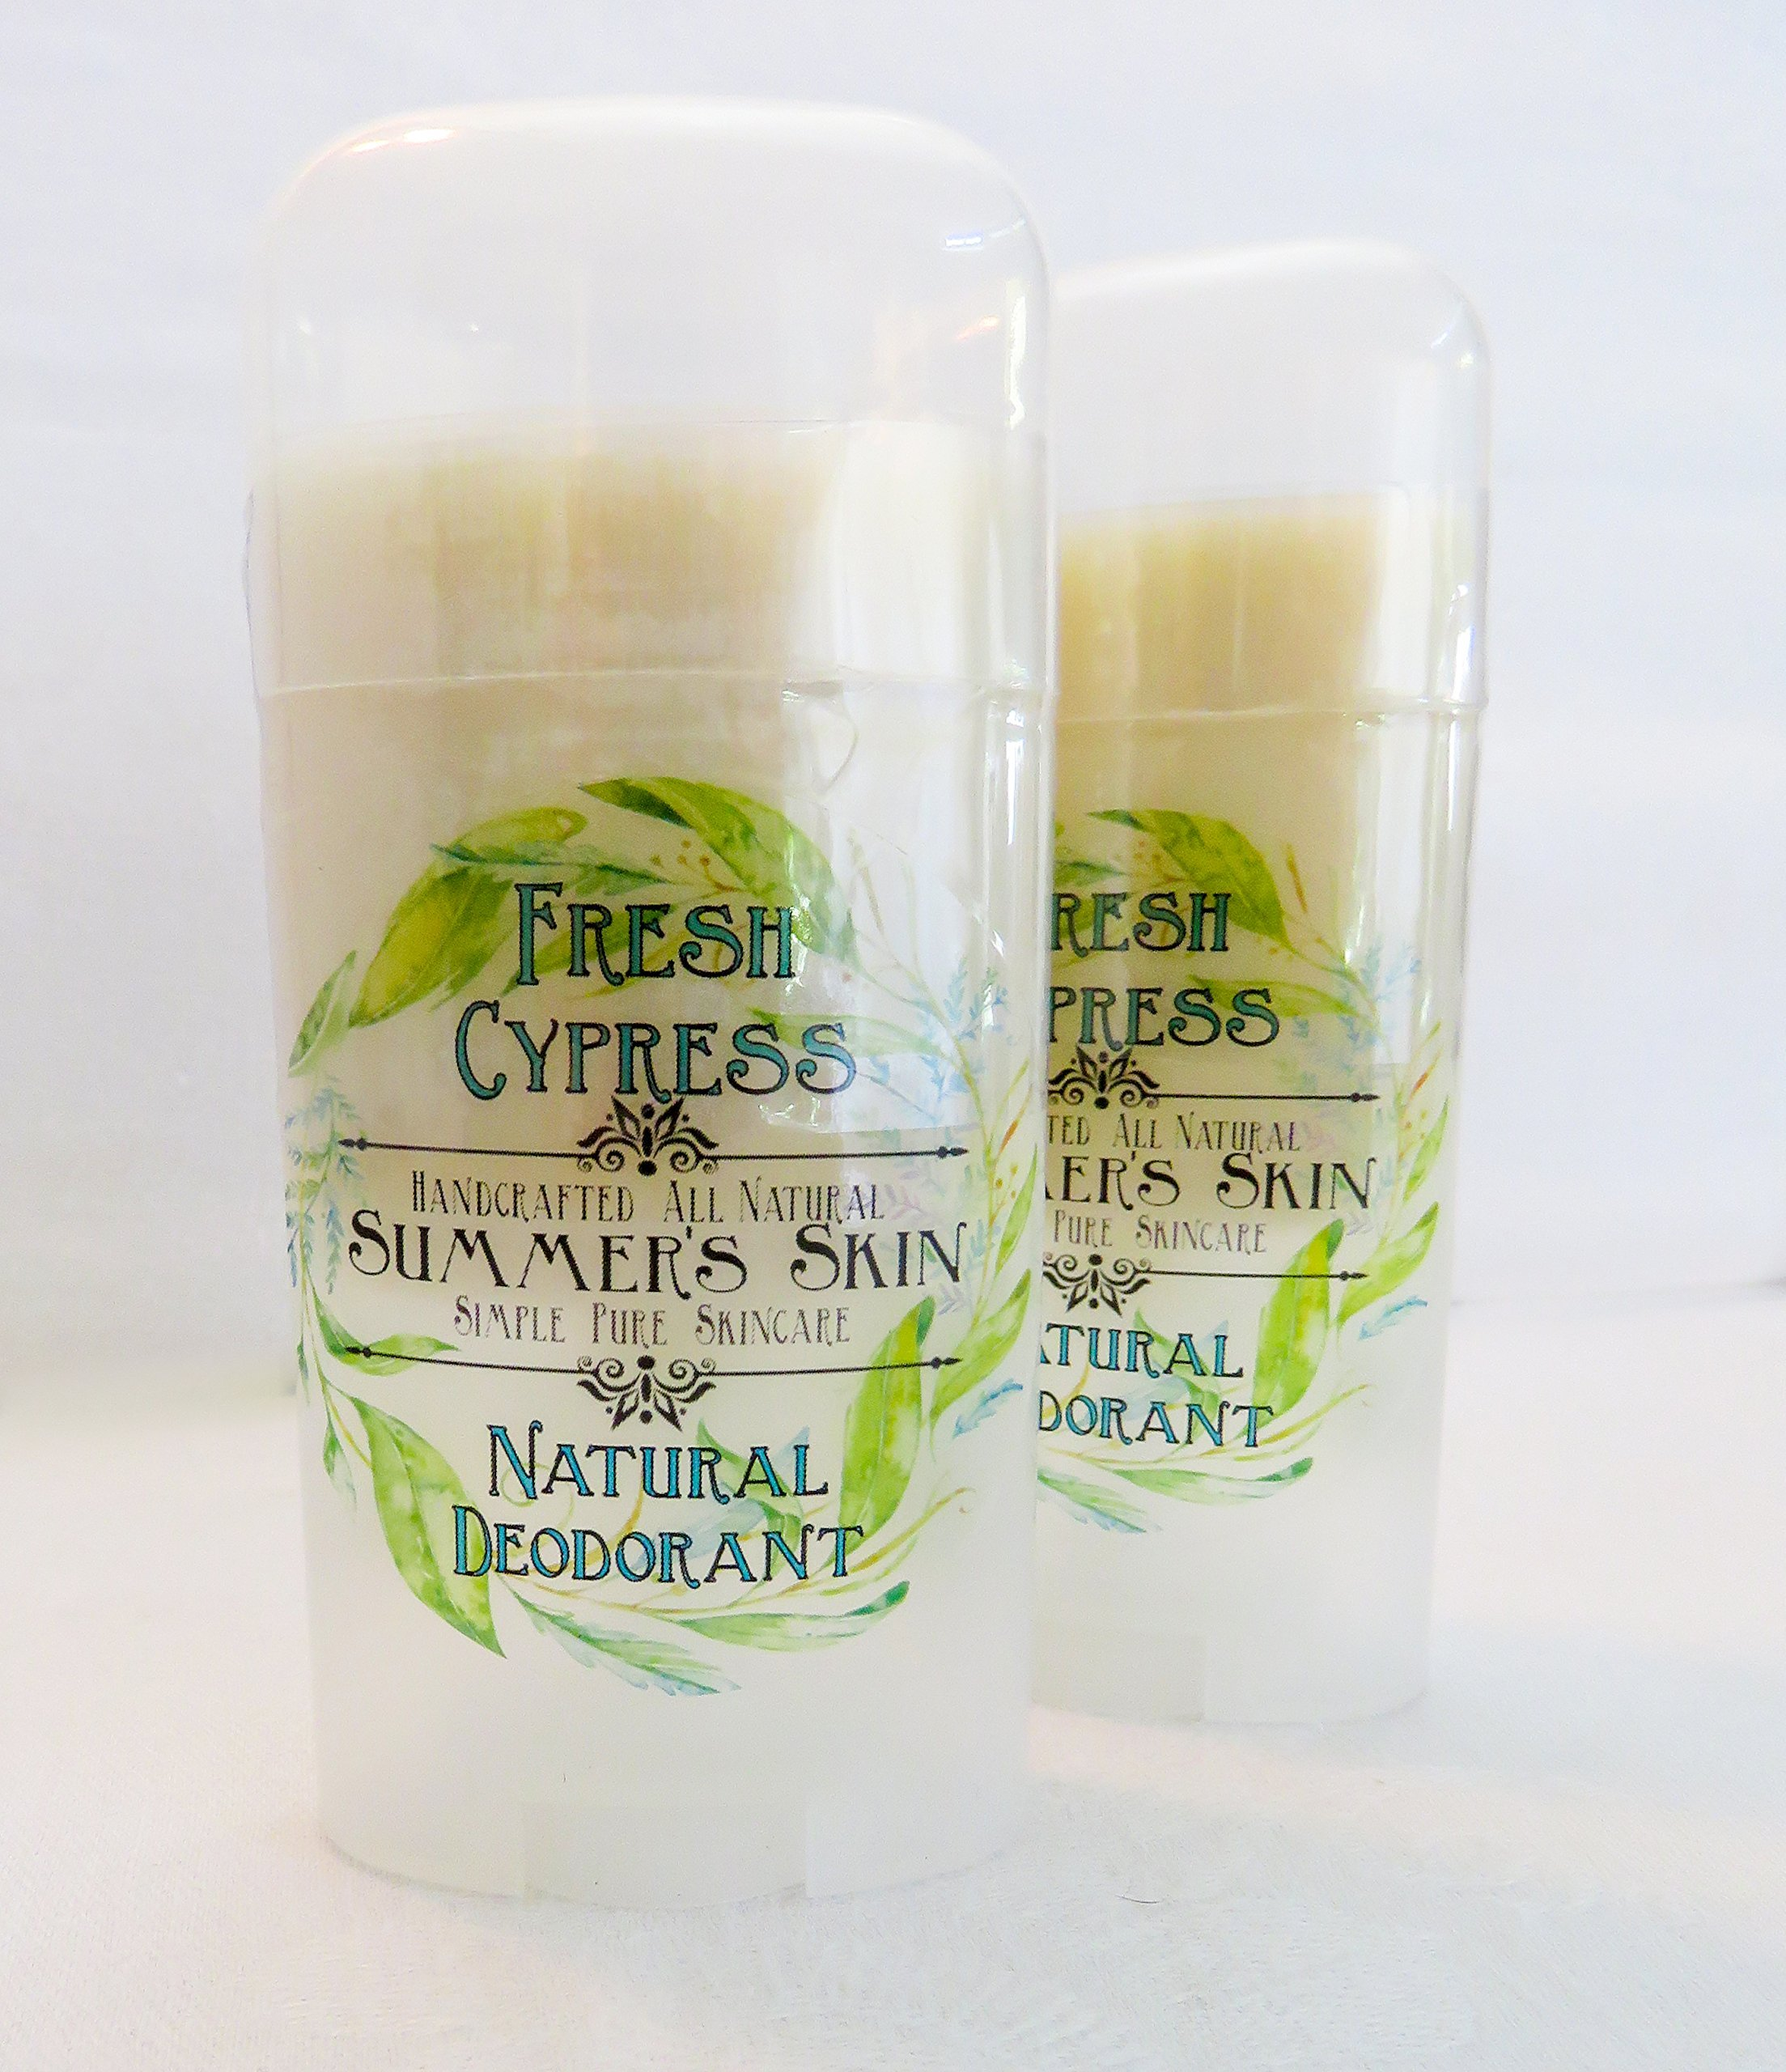 Fresh Cypress Natural Deodorant by Summer's Skin